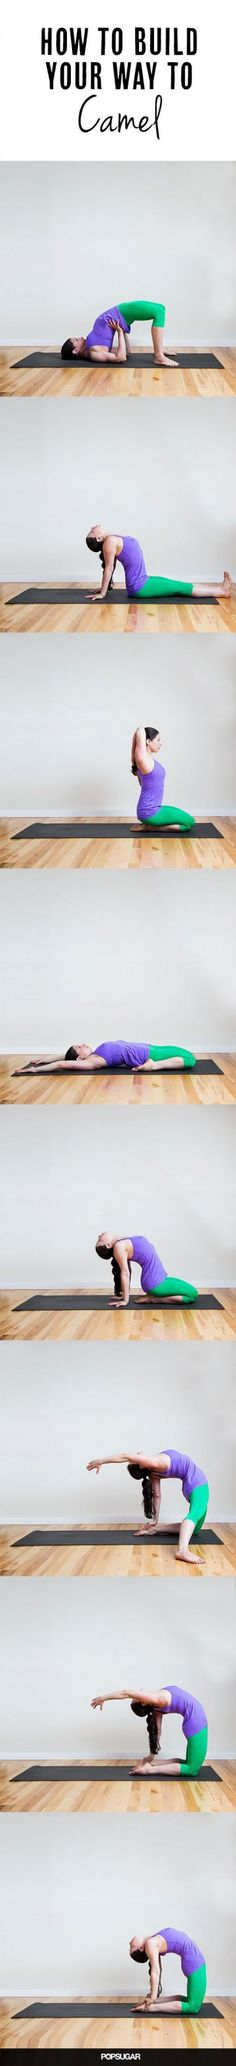 Great poses to lead you to camel pose. Camel Yoga Pose (Ustrasana)